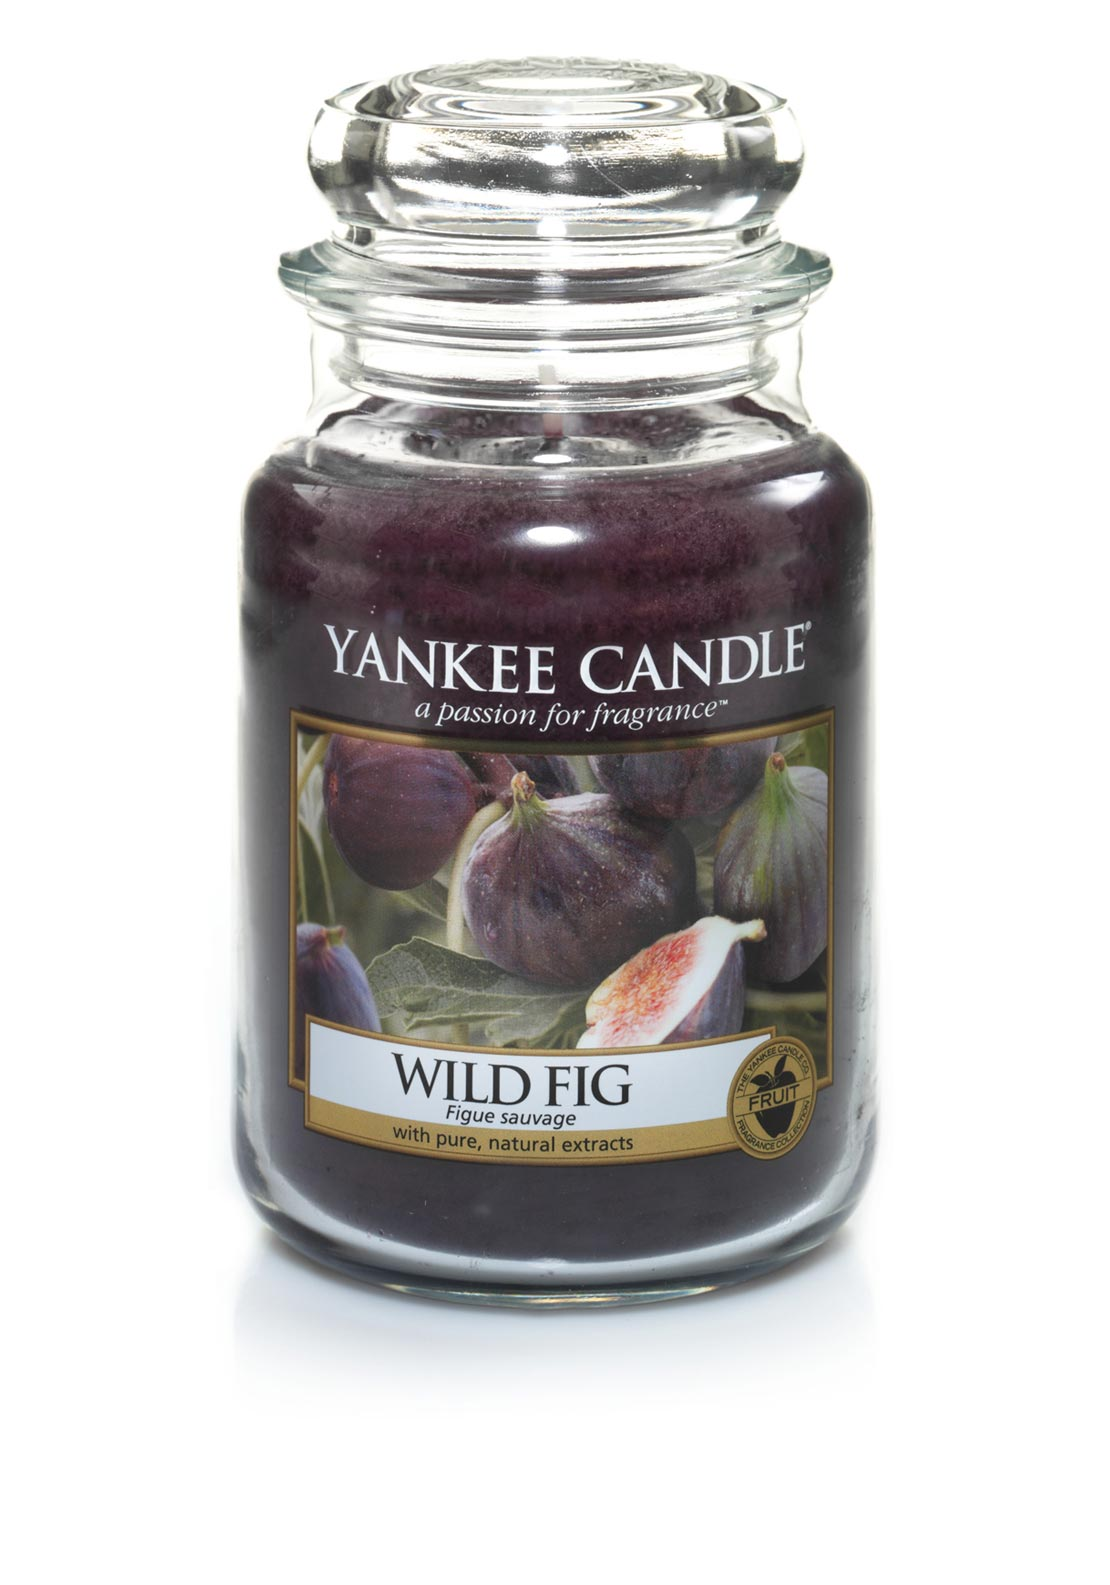 Yankee Candle Large Classic Jar, Wild Fig